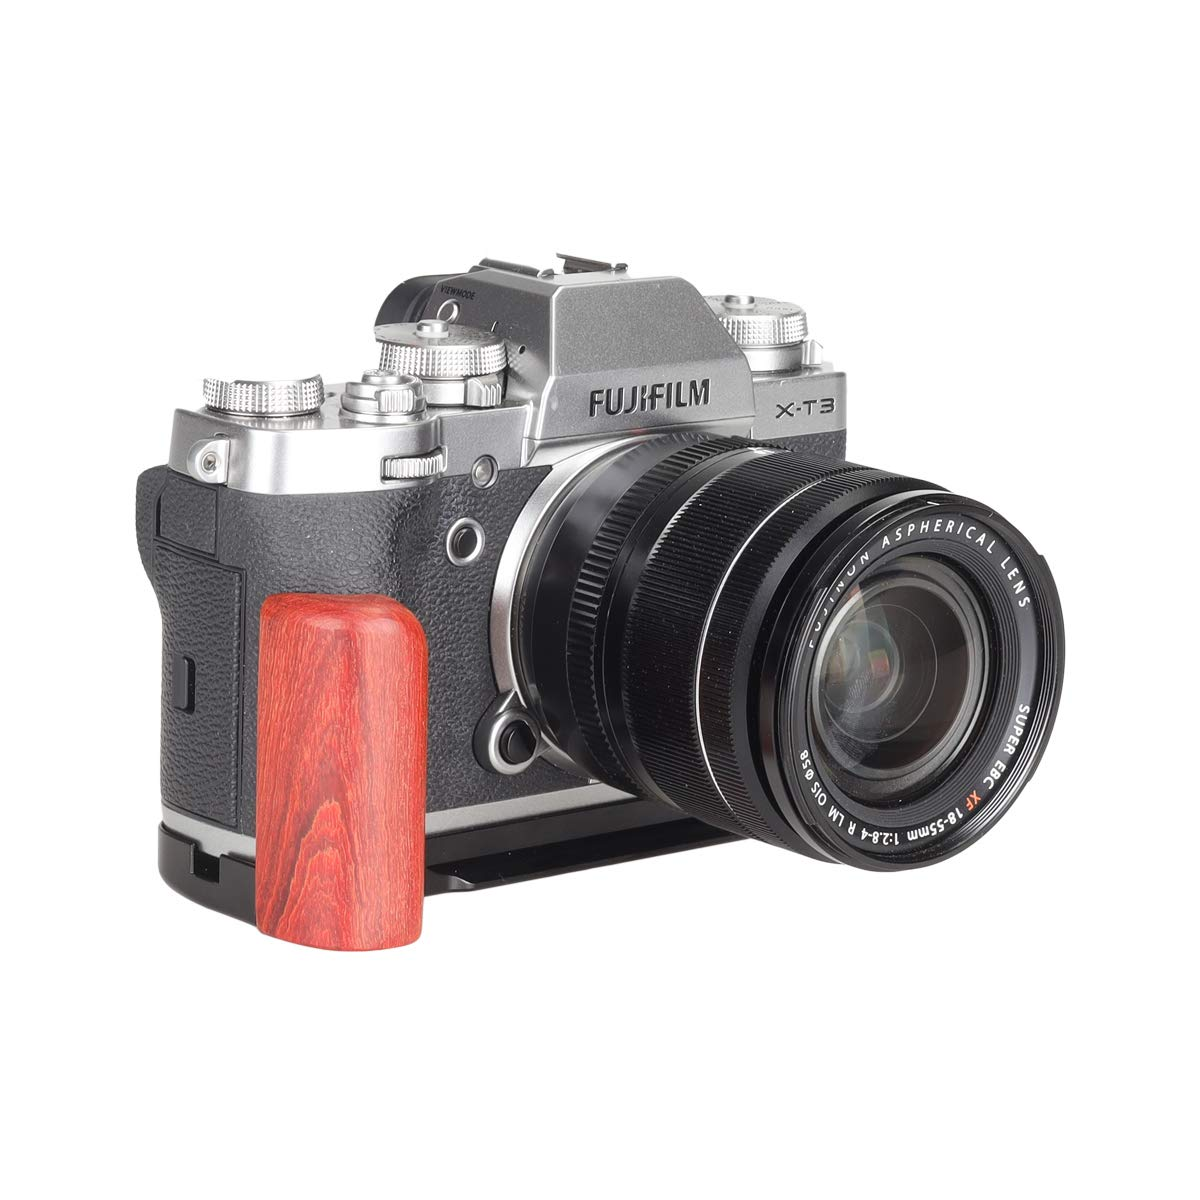 WEPOTO GP-RX100 Tripod Aluminum Alloy Quick Release L Plate Bracket Metal Wooden Camera Handle Hand Grip for Sony RX100//RX100Ⅱ//RX100Ⅲ//RX100Ⅳ//RX100ⅤⅡ